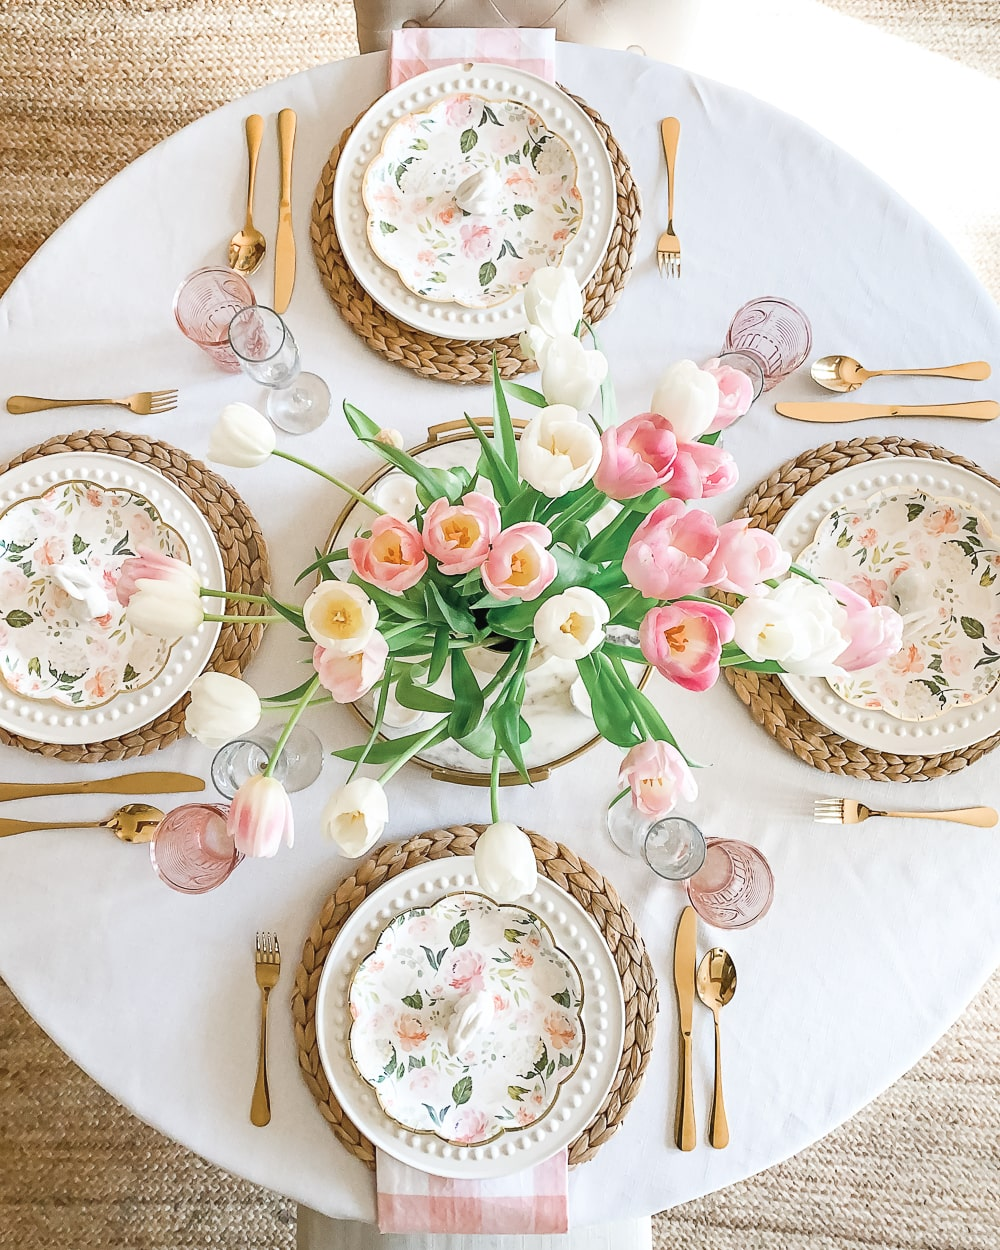 Southern lifestyle blogger Stephanie Ziajka shares some Easter table setting ideas on Diary of a Debutante